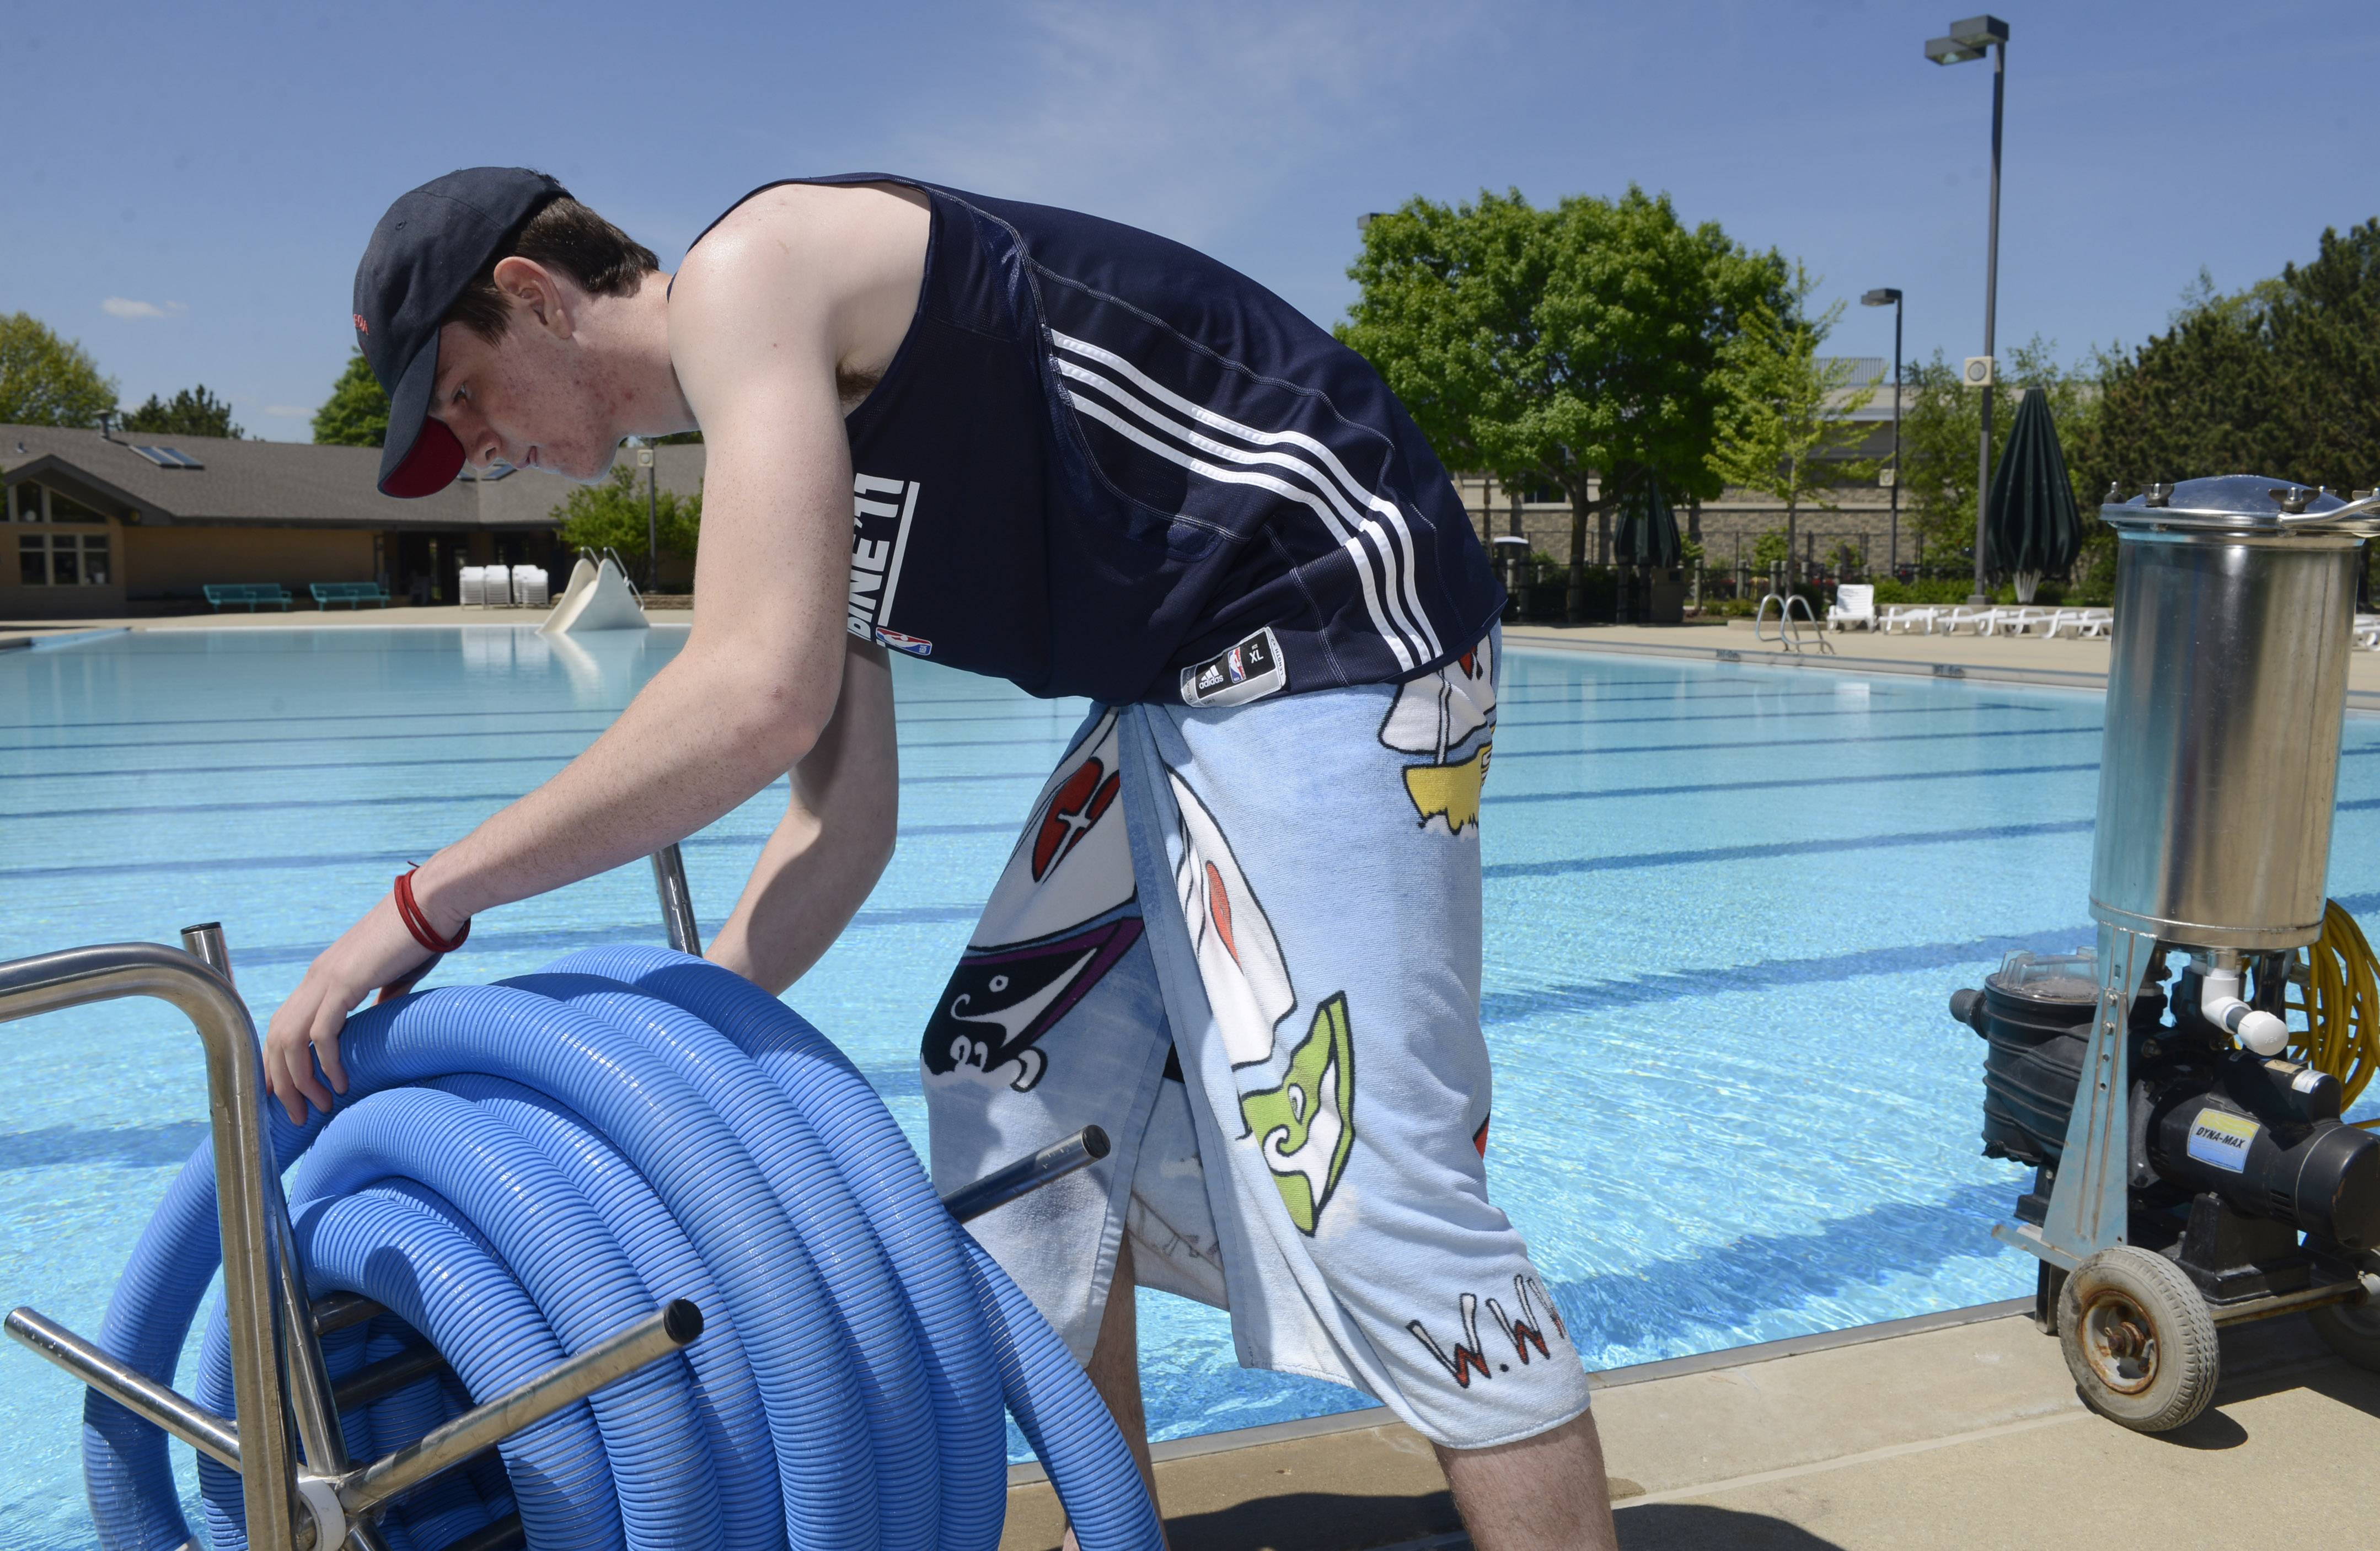 Lifeguard Tom Martin puts away cleaning equipment at Pioneer Park Pool in Arlington Heights, which is opening Saturday.